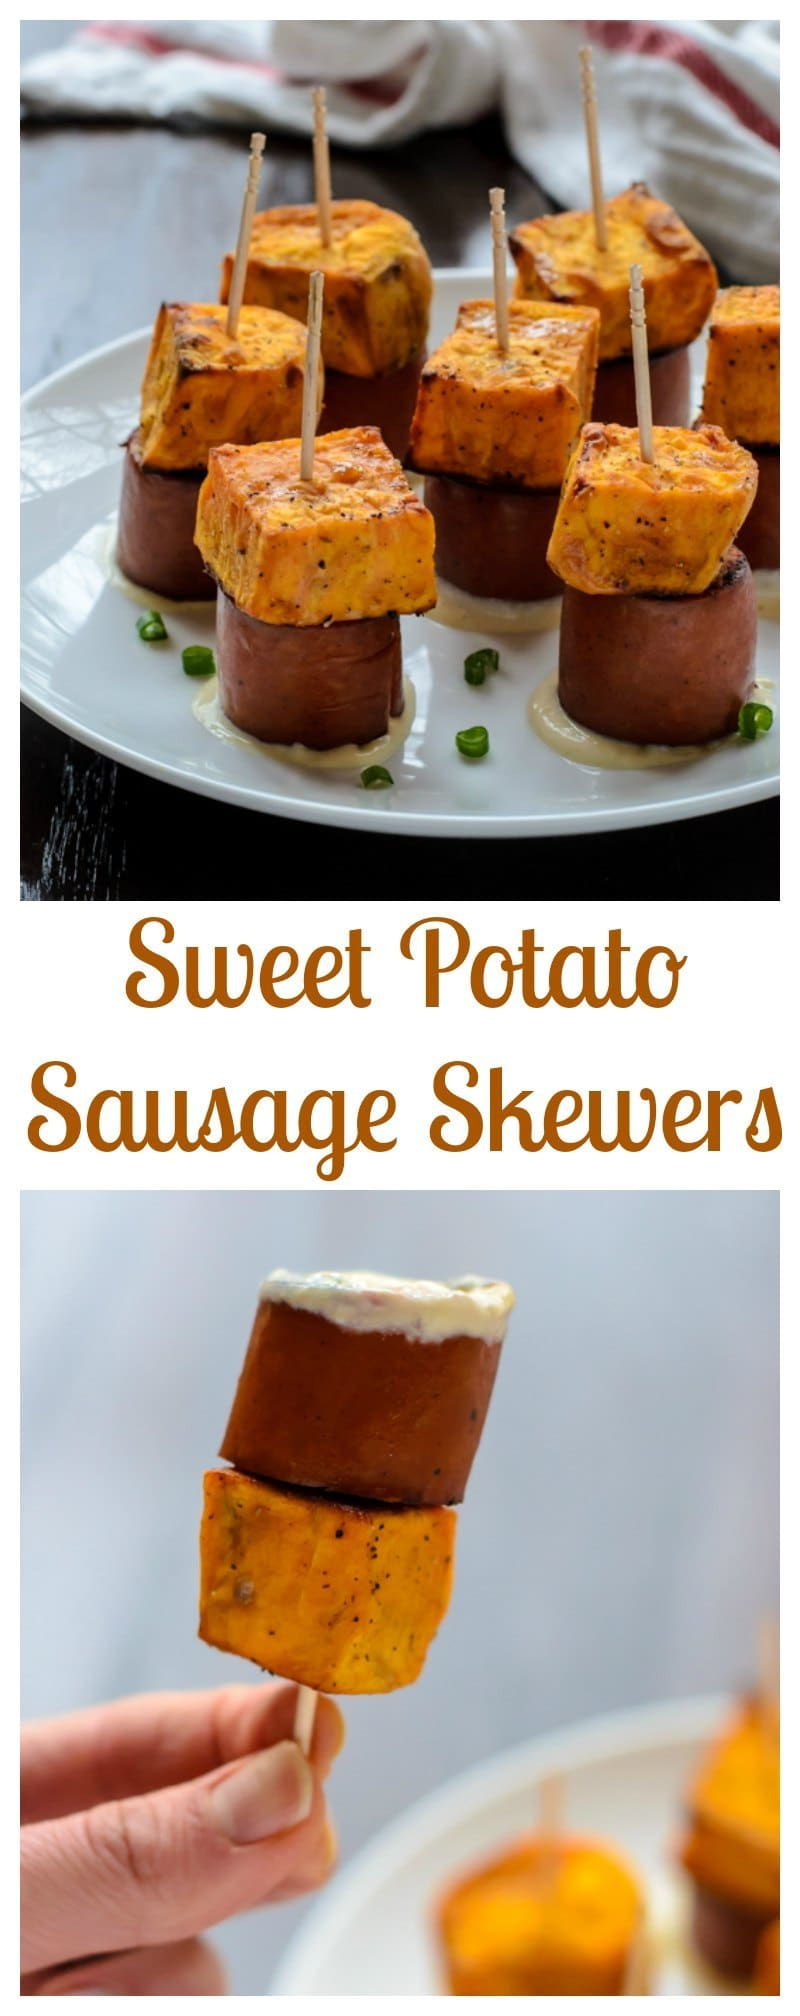 Maple Sweet Potato Sausage Skewers. The perfect easy appetizer for game day and tailgates!